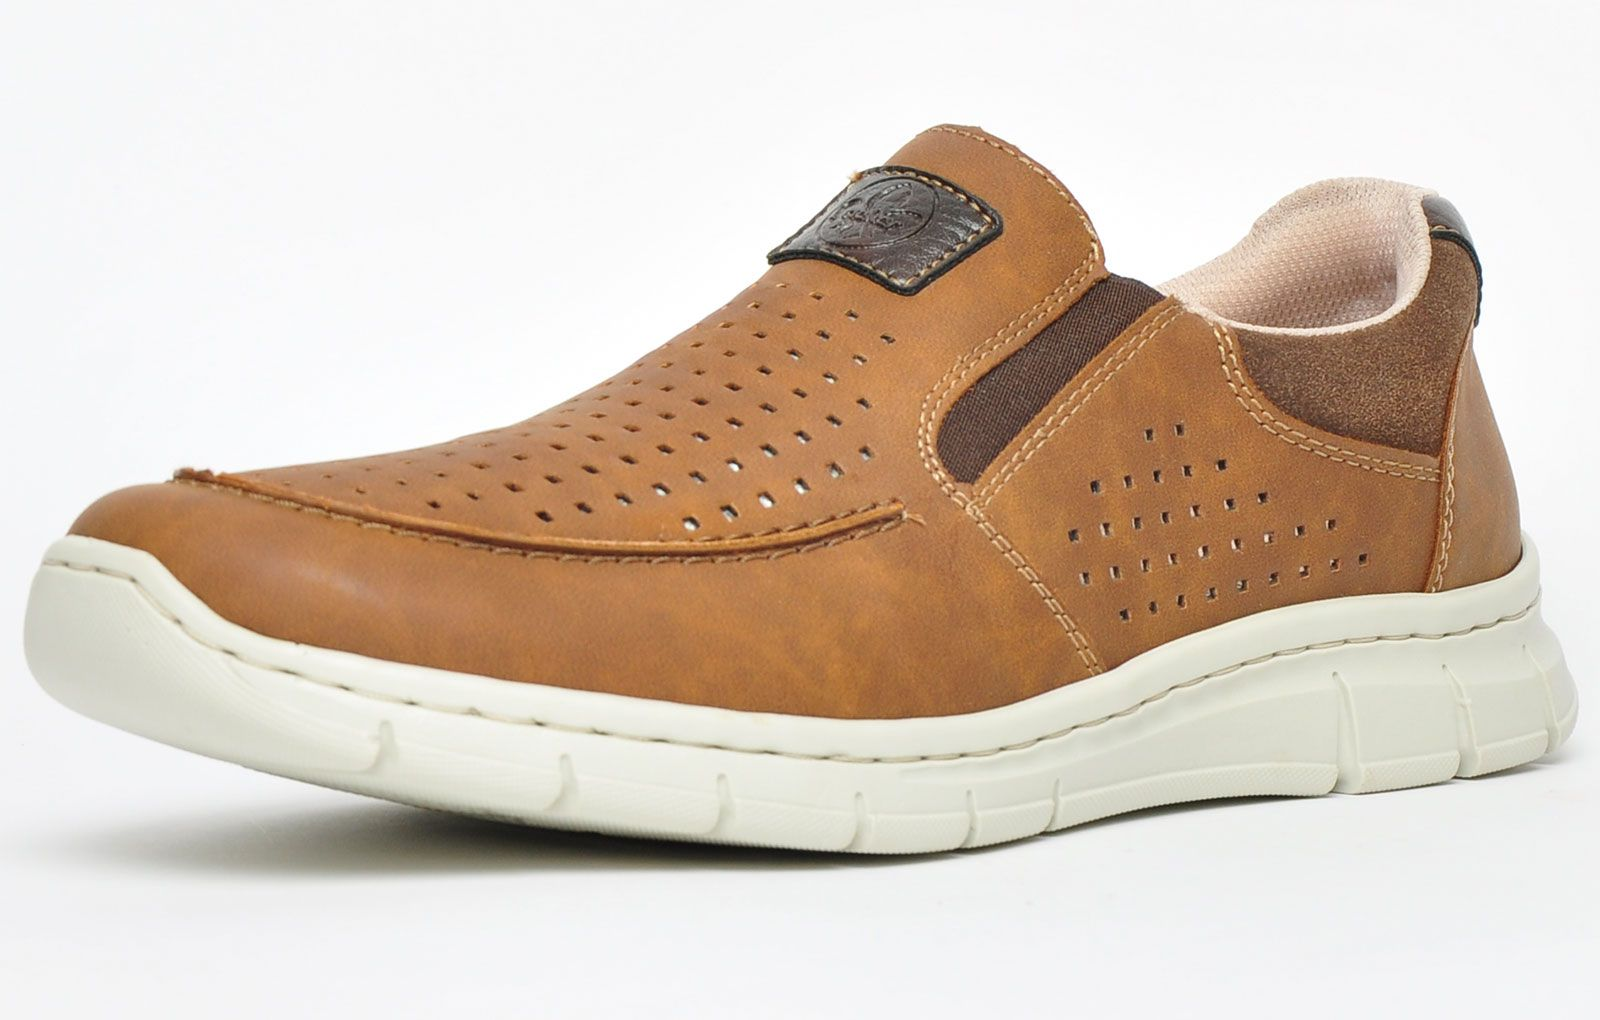 Rieker Casual Slip On Loafer B7766-24 Mens Wide Fit